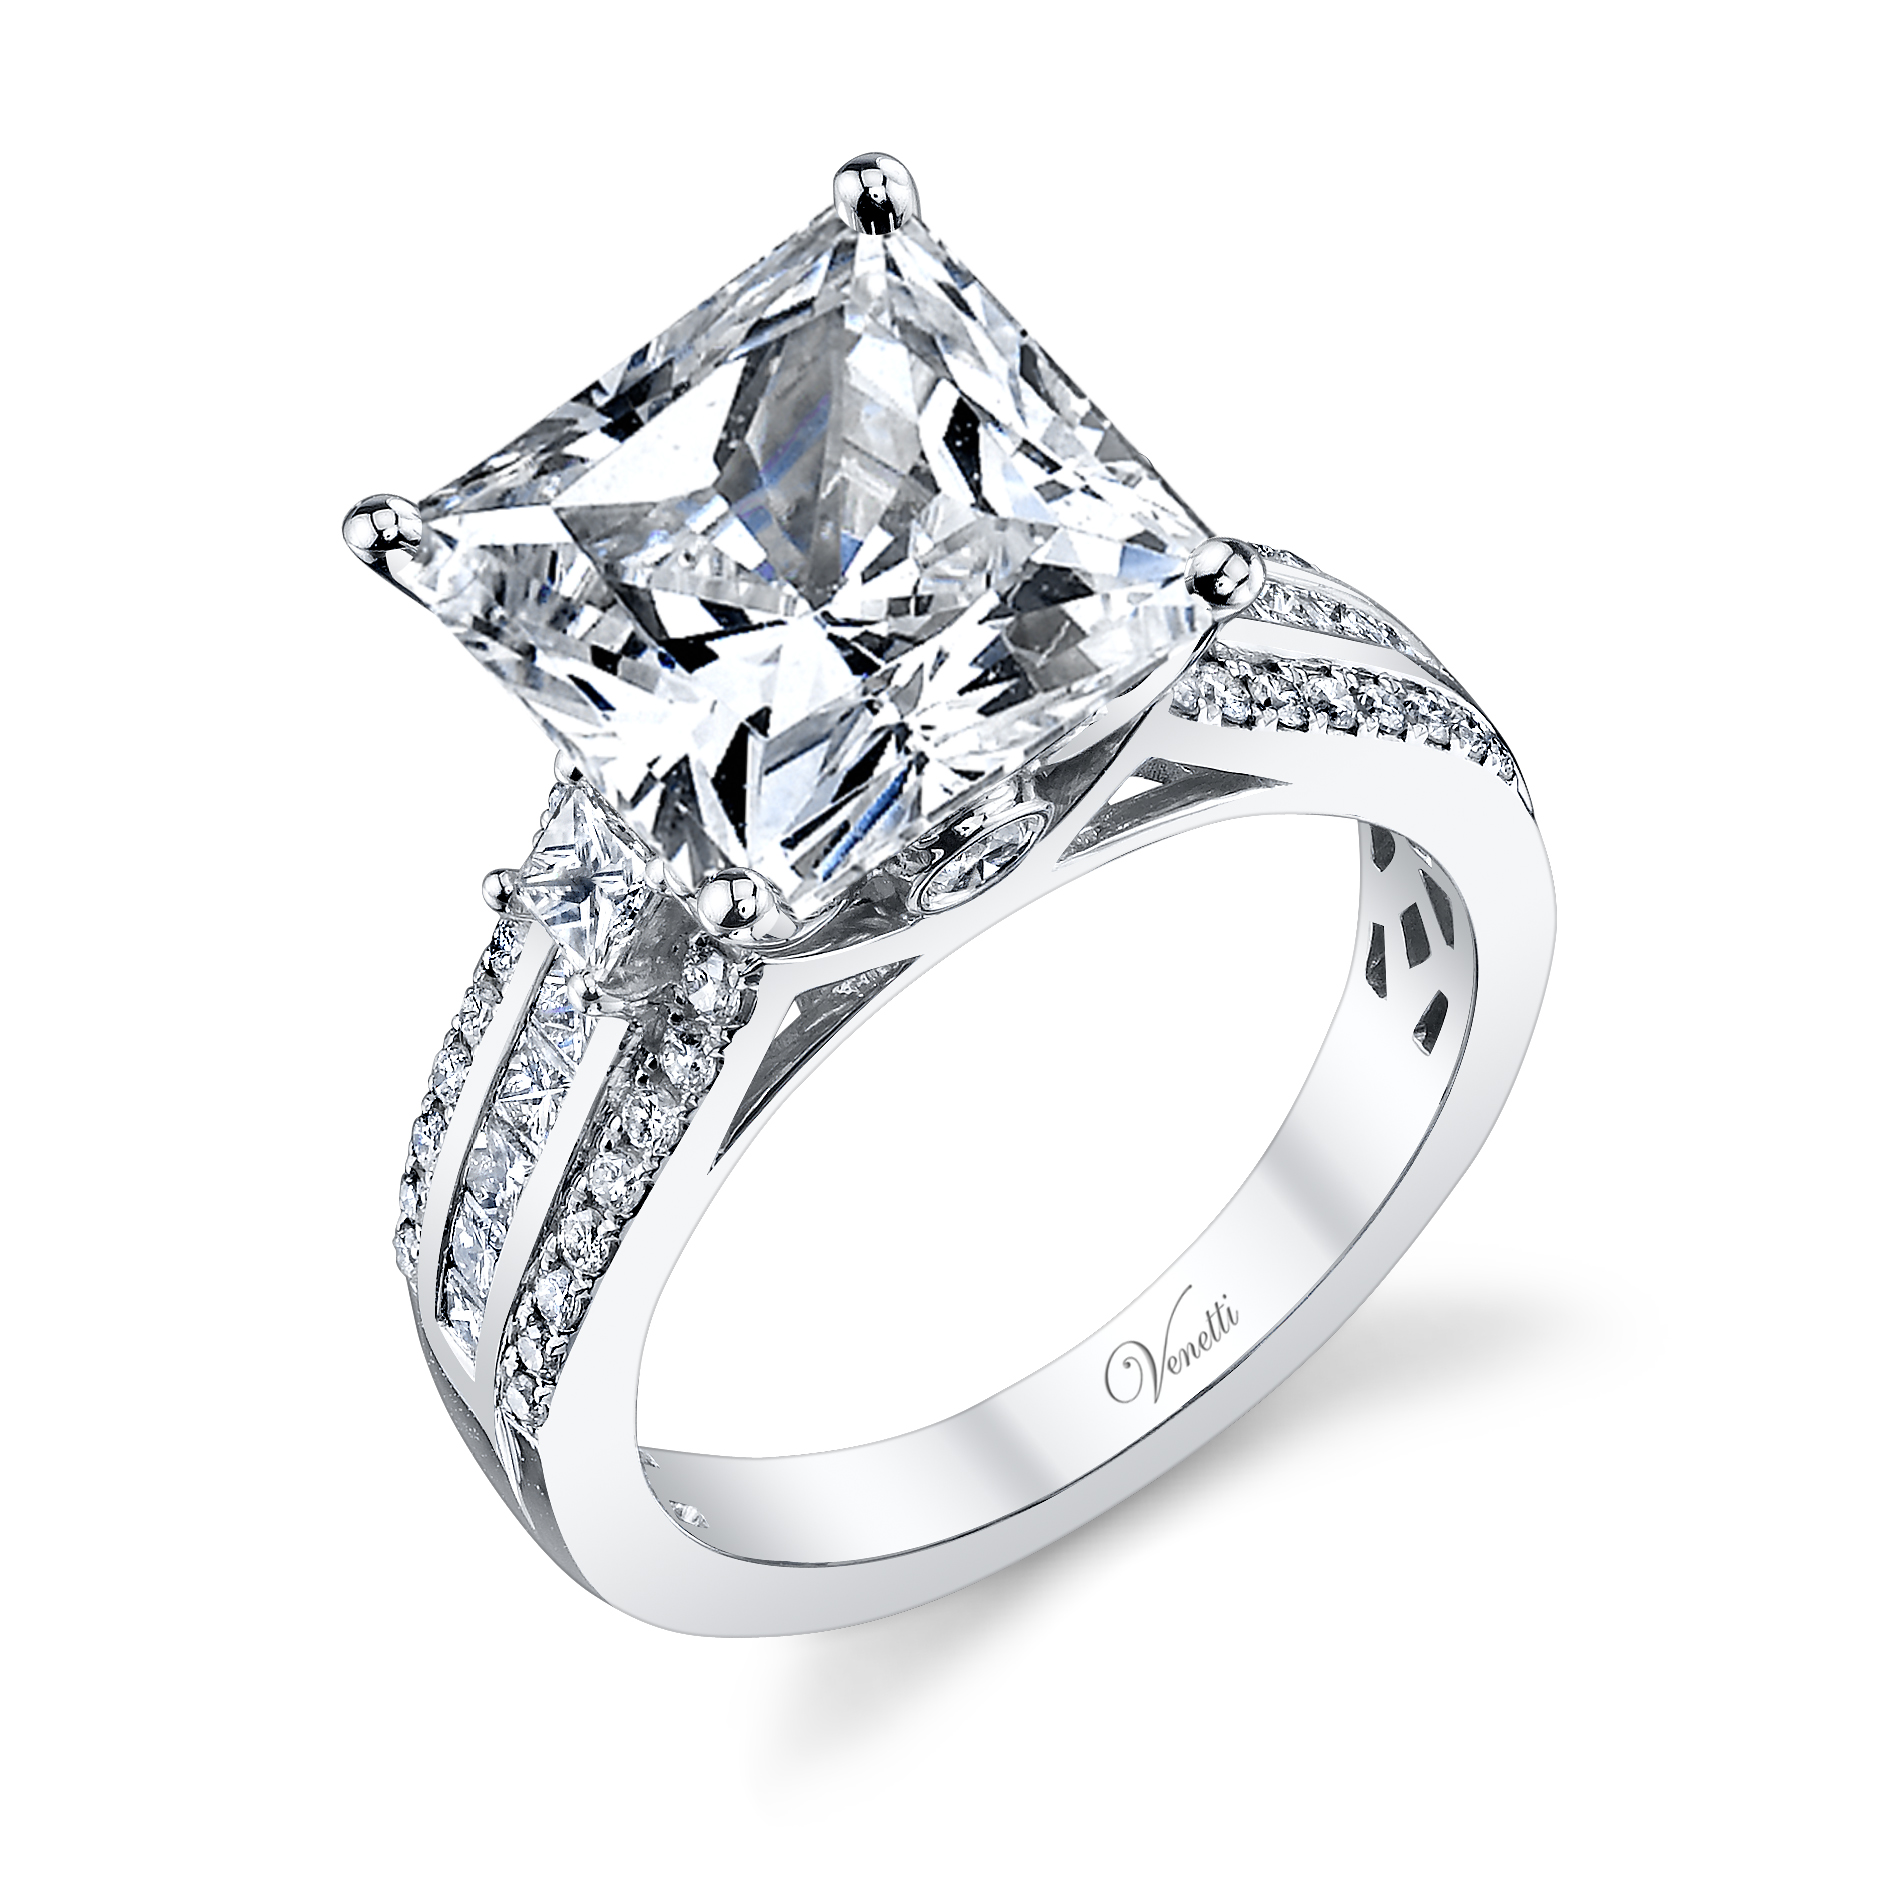 Oval Diamond Engagement Ring 14k W Ring 262rd 136ct